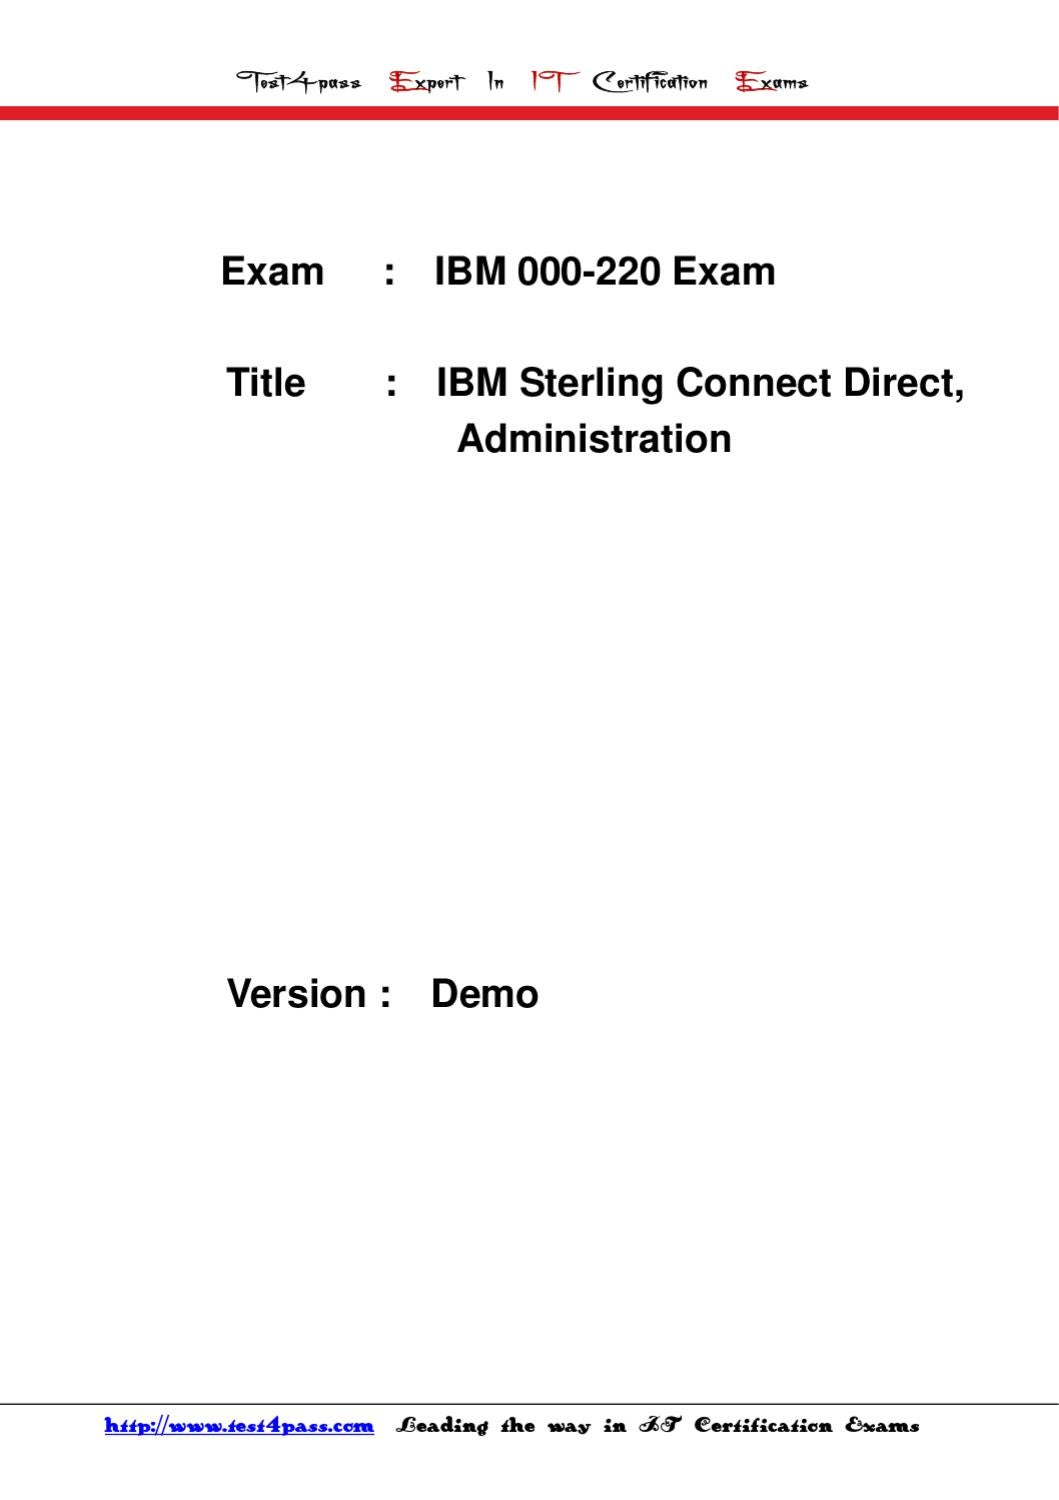 test4pass ibm test 000-220 exam dumps study guide by Tonic Jackie - issuu